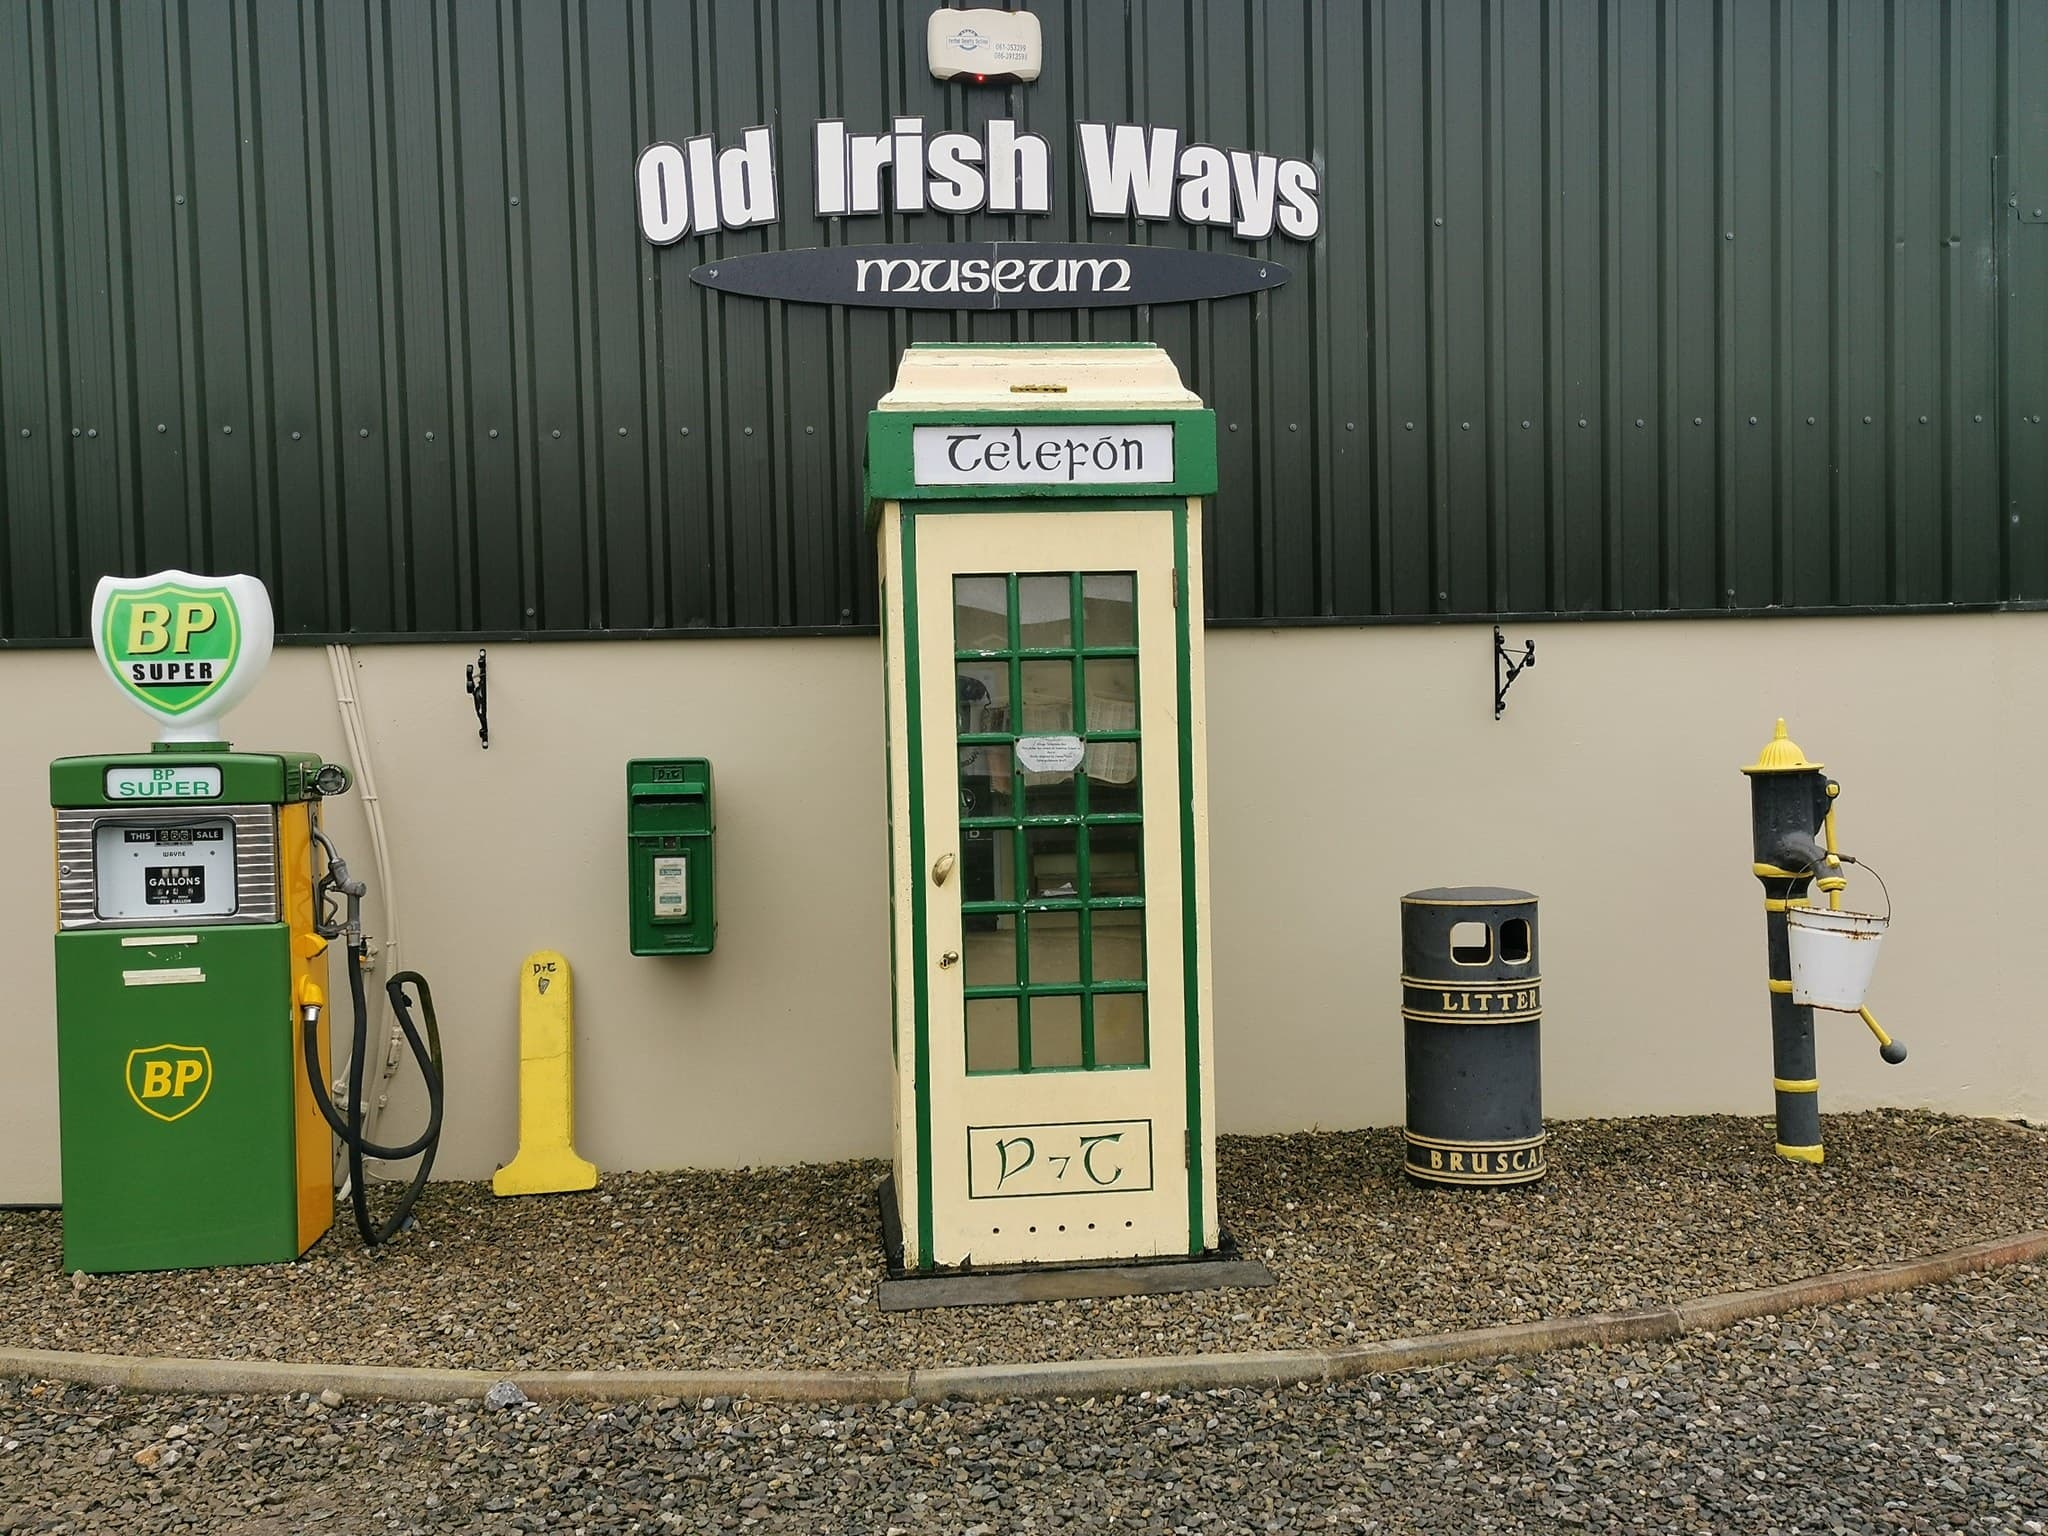 Old Irish Ways 2